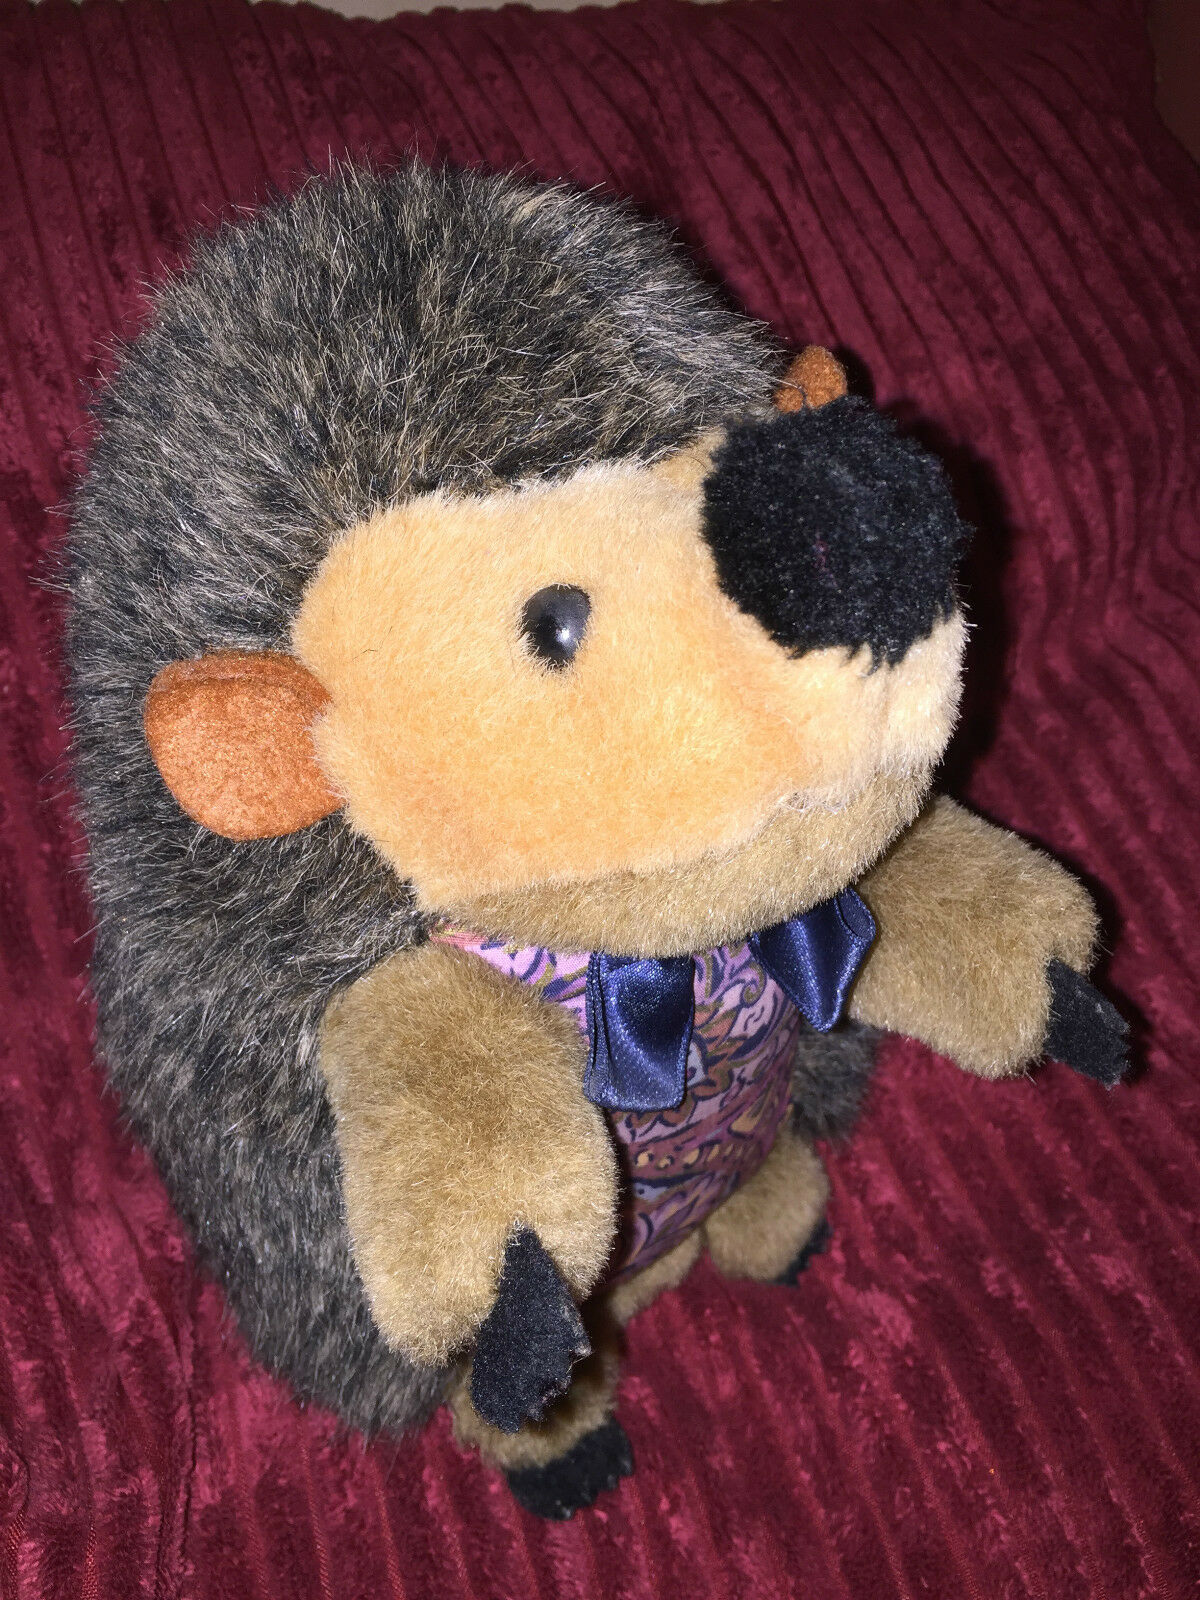 Vintage Soft Toy Hedgehog  with Bow Tie and pattern front 20 cm